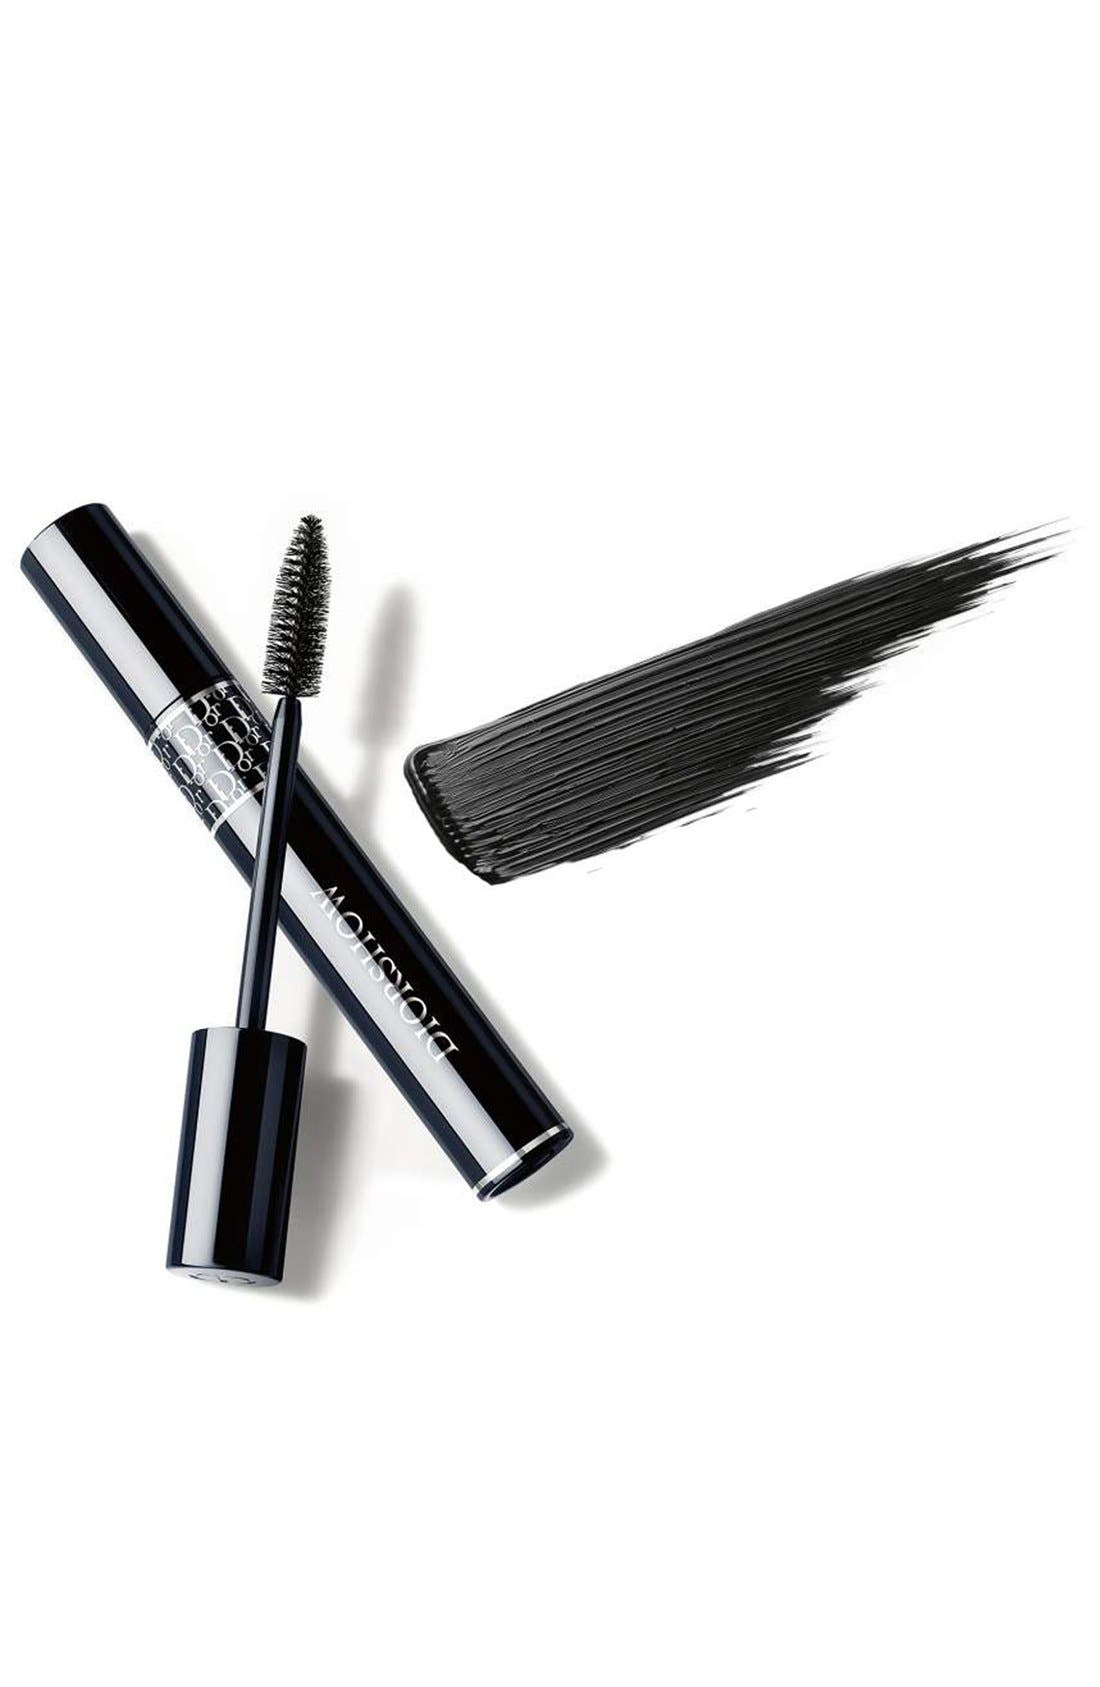 Diorshow Lash-Extension Effect Volume Mascara,                             Alternate thumbnail 7, color,                             090 BLACK